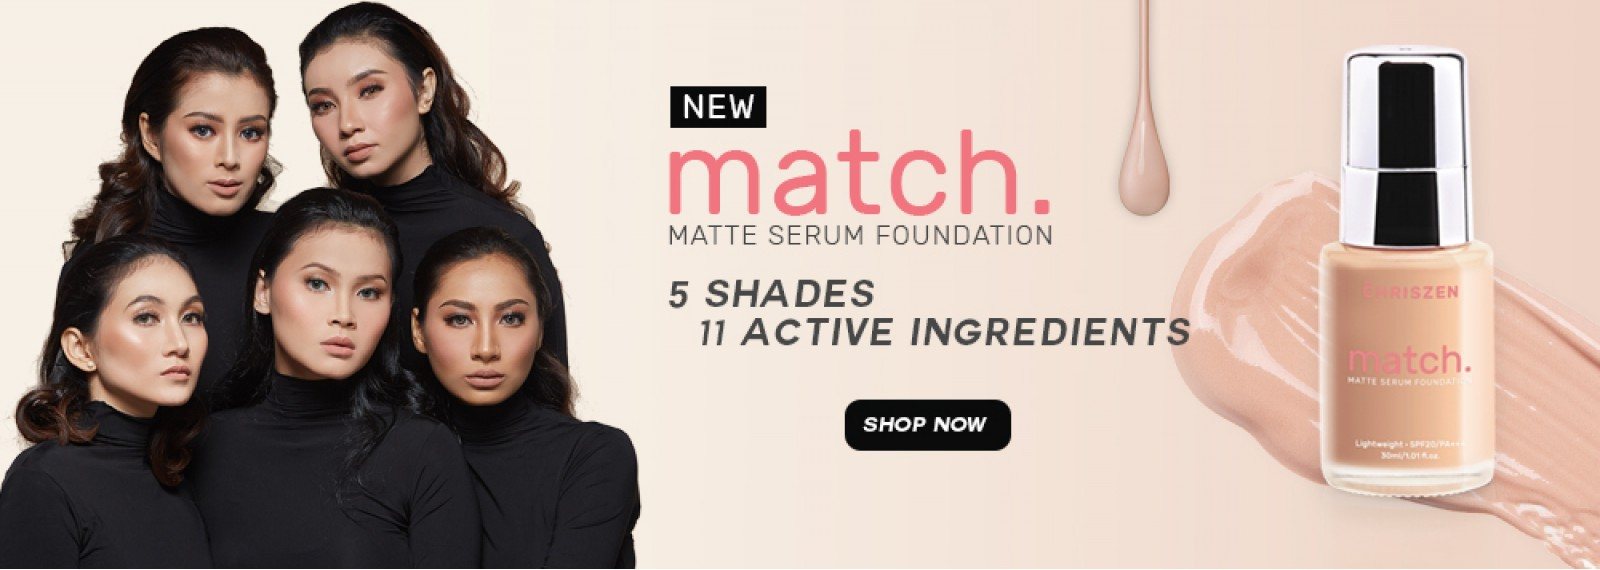 MATCH MATTE SERUM FOUNDATION